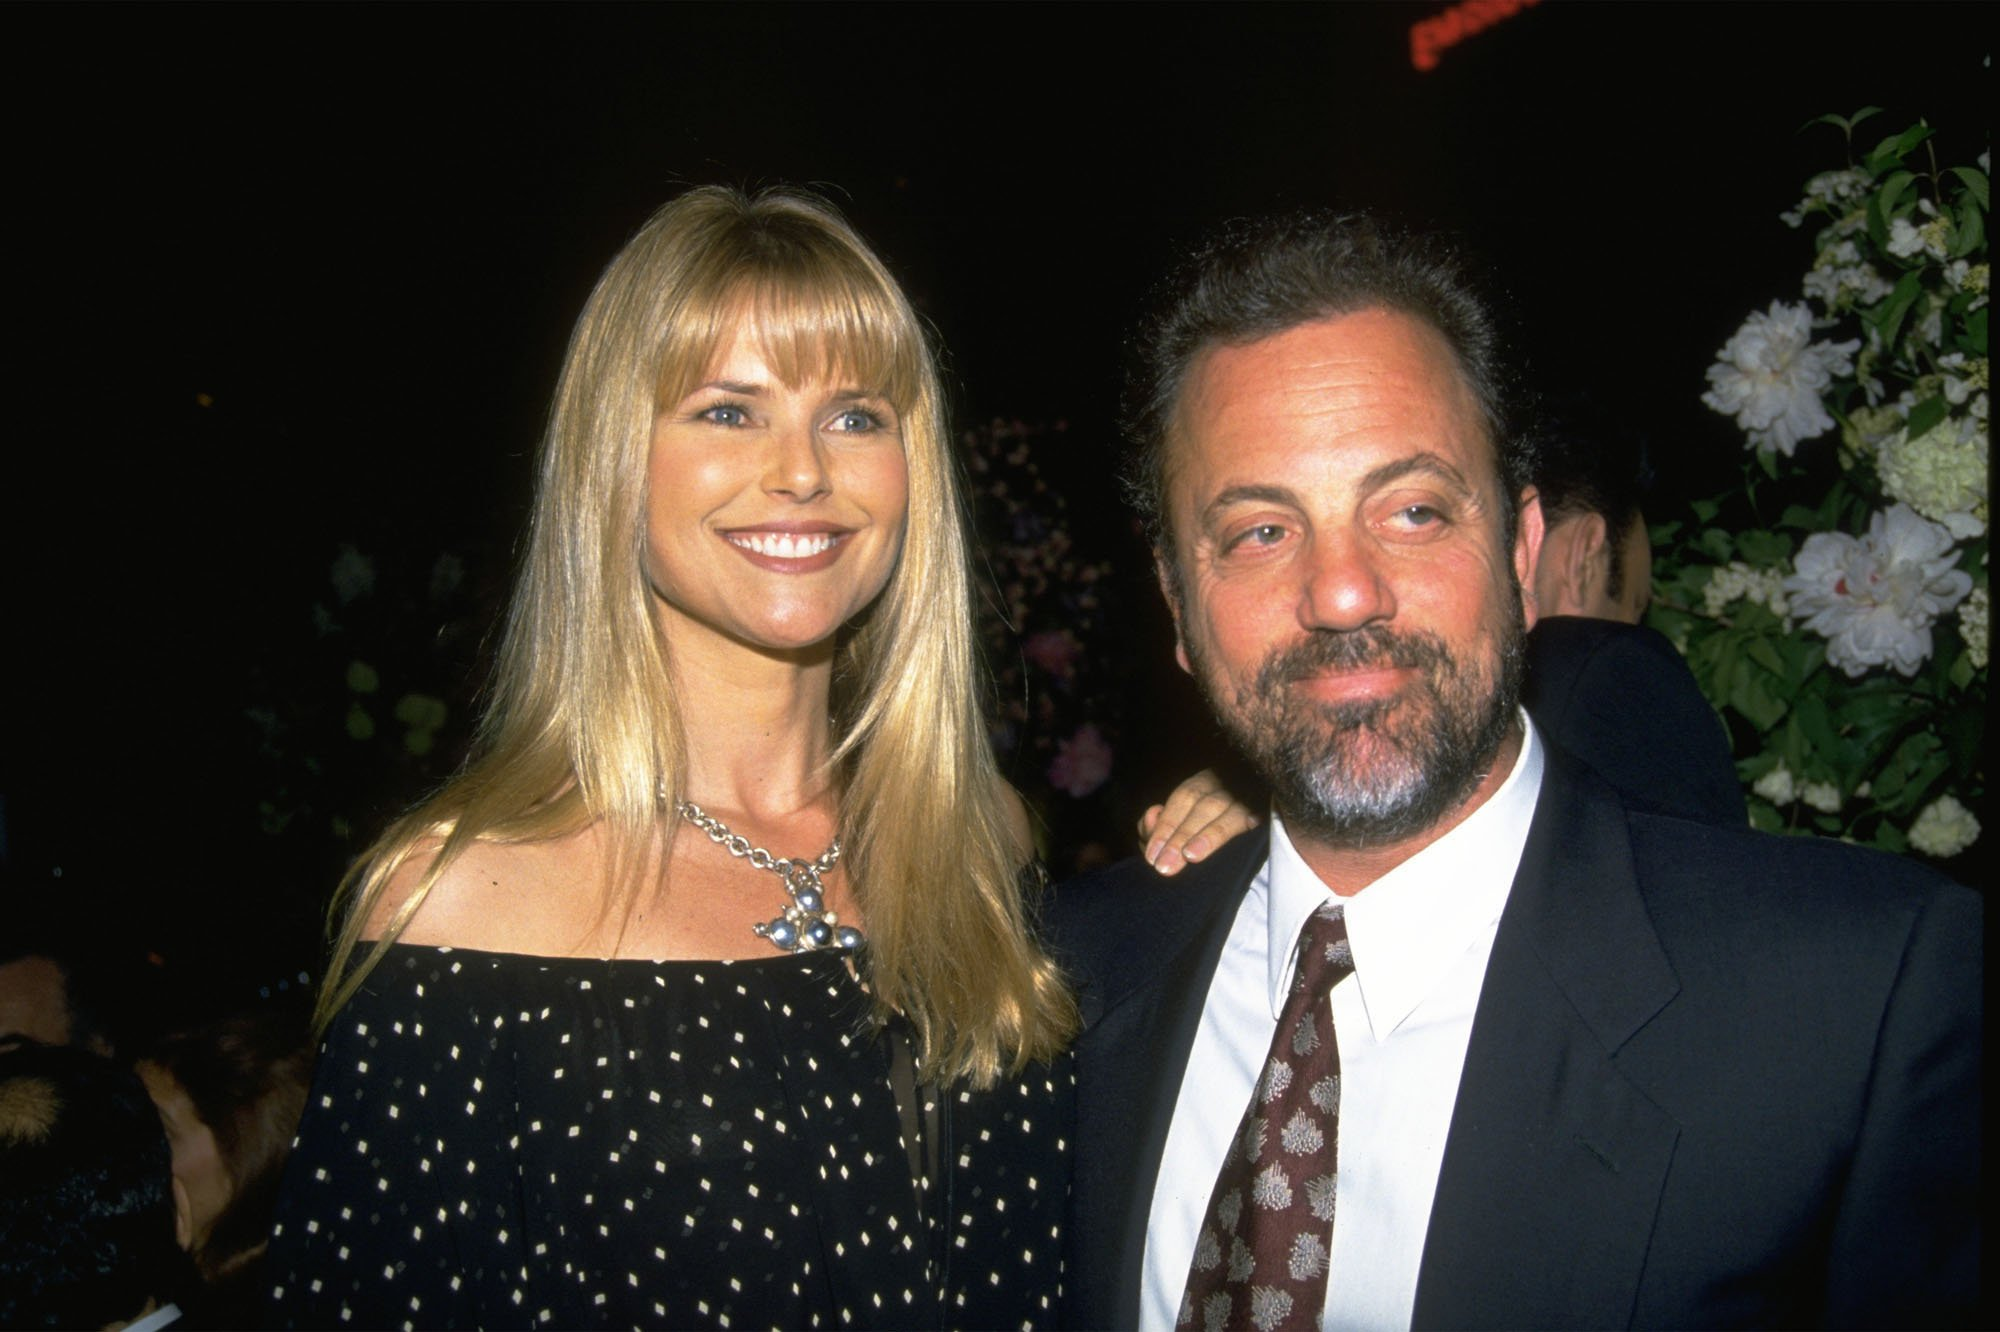 Christie Brinkley and Billy Joel circa 1993 in New York City | Photo: Getty Images